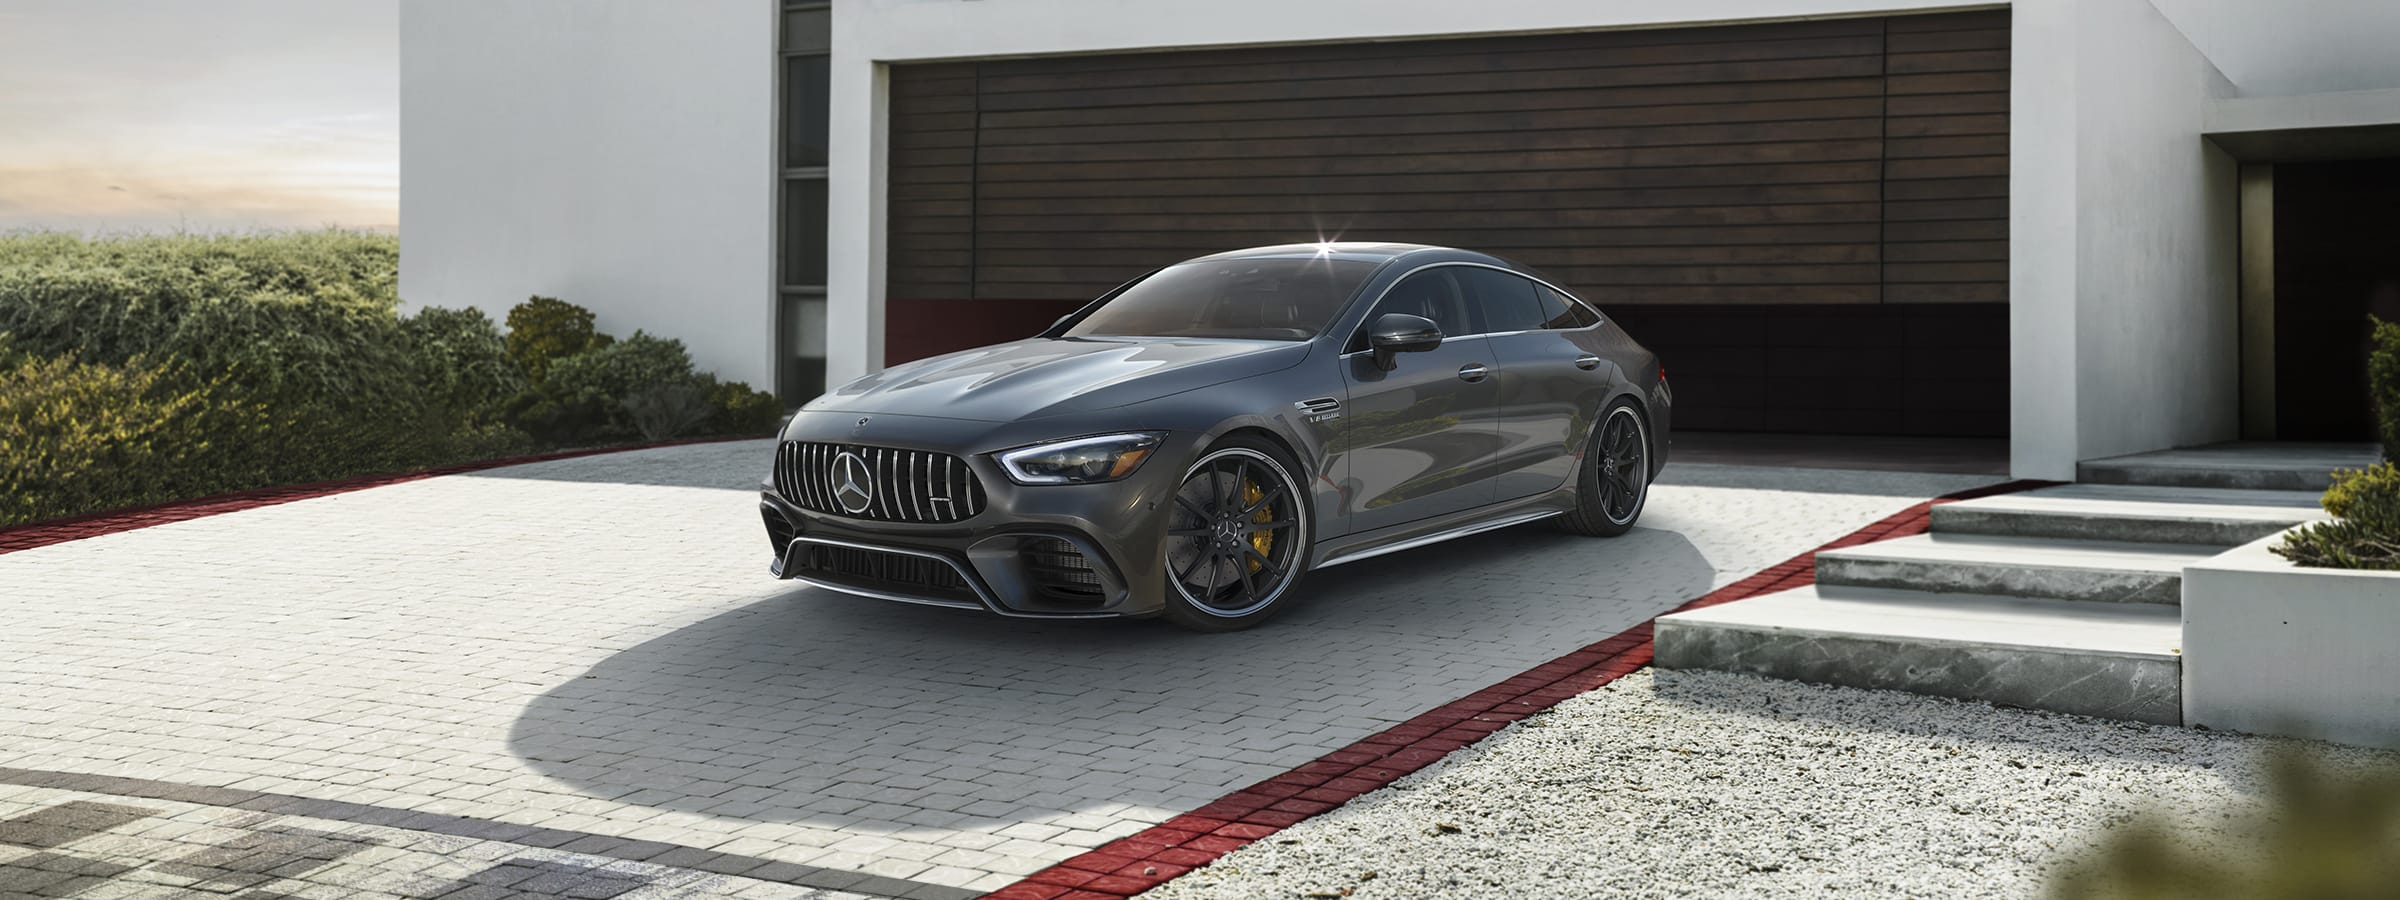 2019 Mercedes-Benz AMG GT 4-Door Coupe Carousel Image